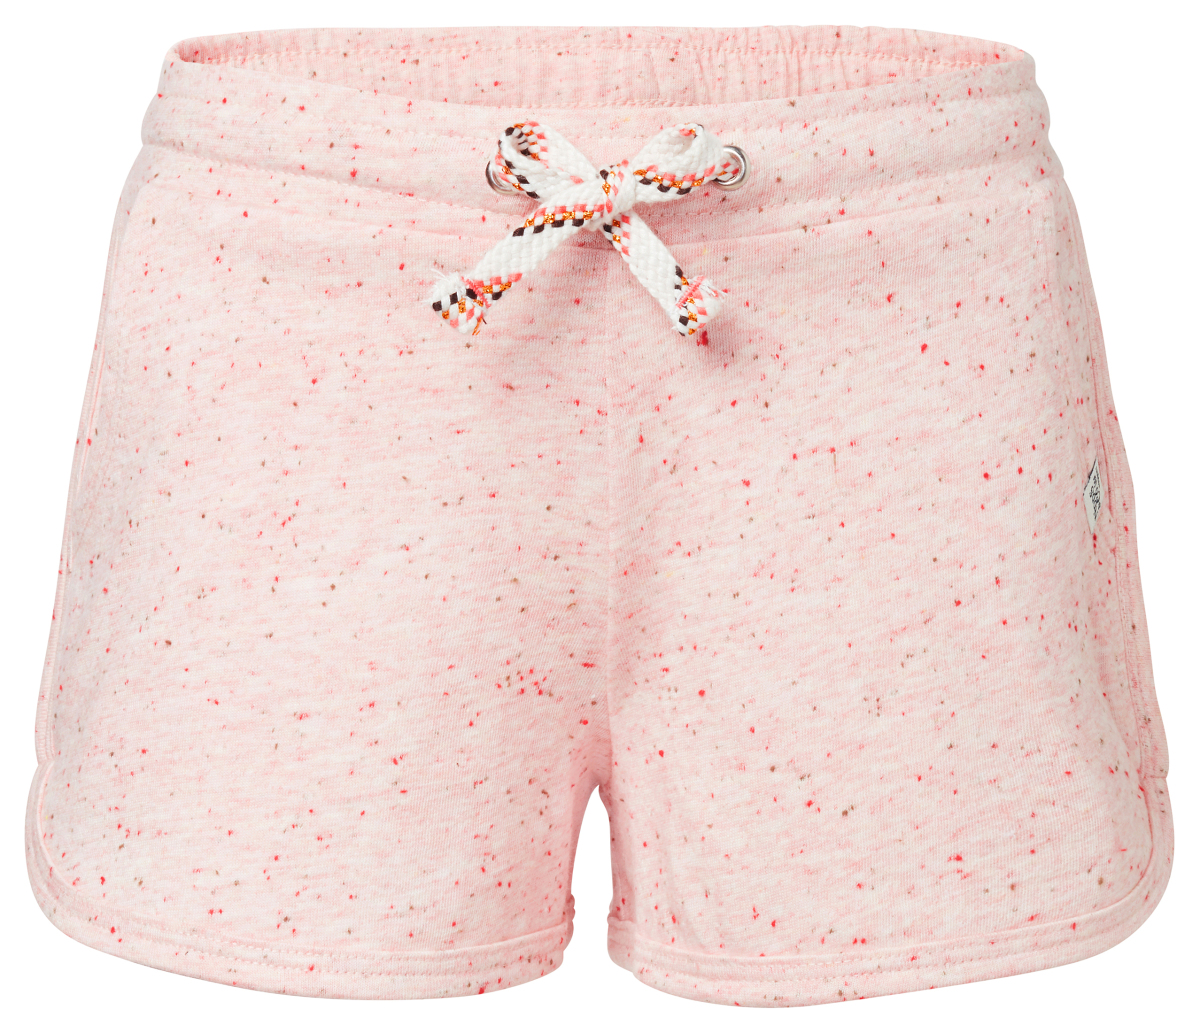 Noppies Shorts Linnsmore creole-pink